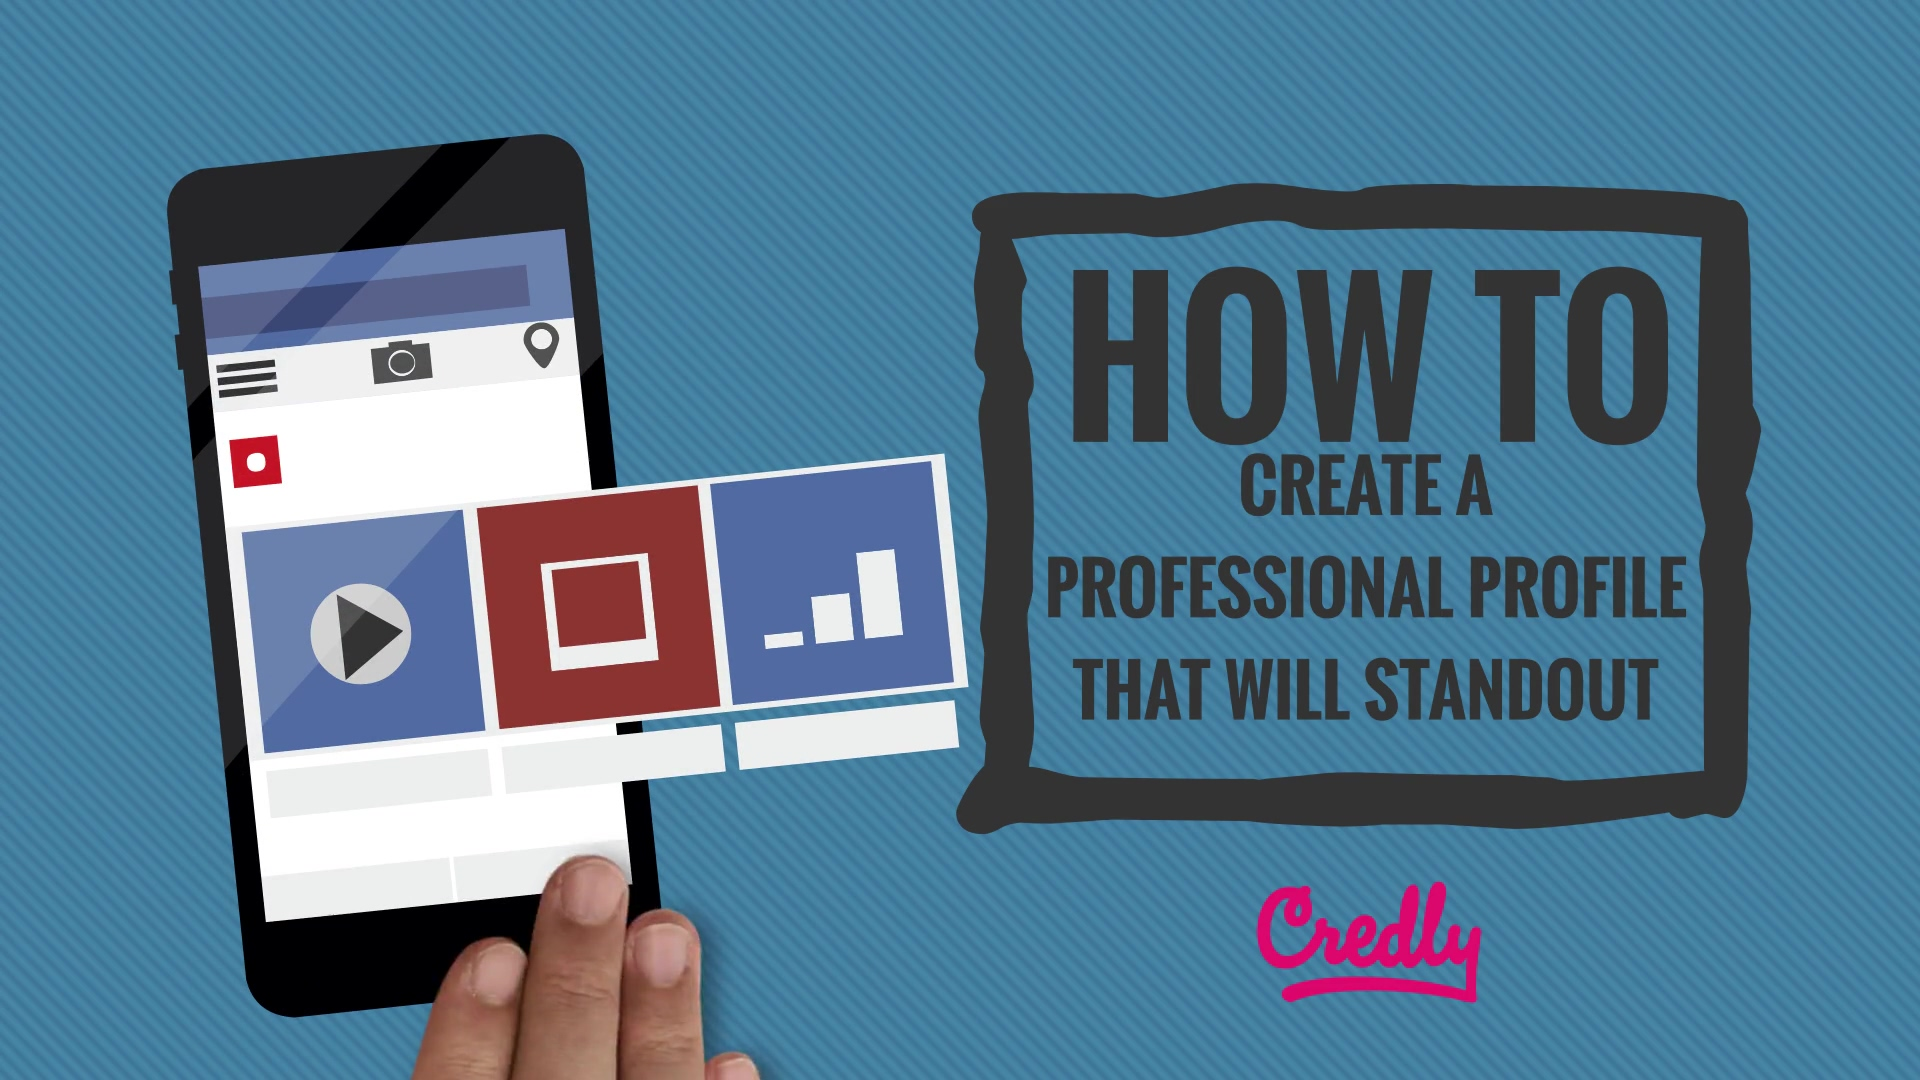 How to Create a Professional Profile That Will Sta-1080p-0be9daef-a3a7-4cdd-87fc-d07482dfbca5 (2)